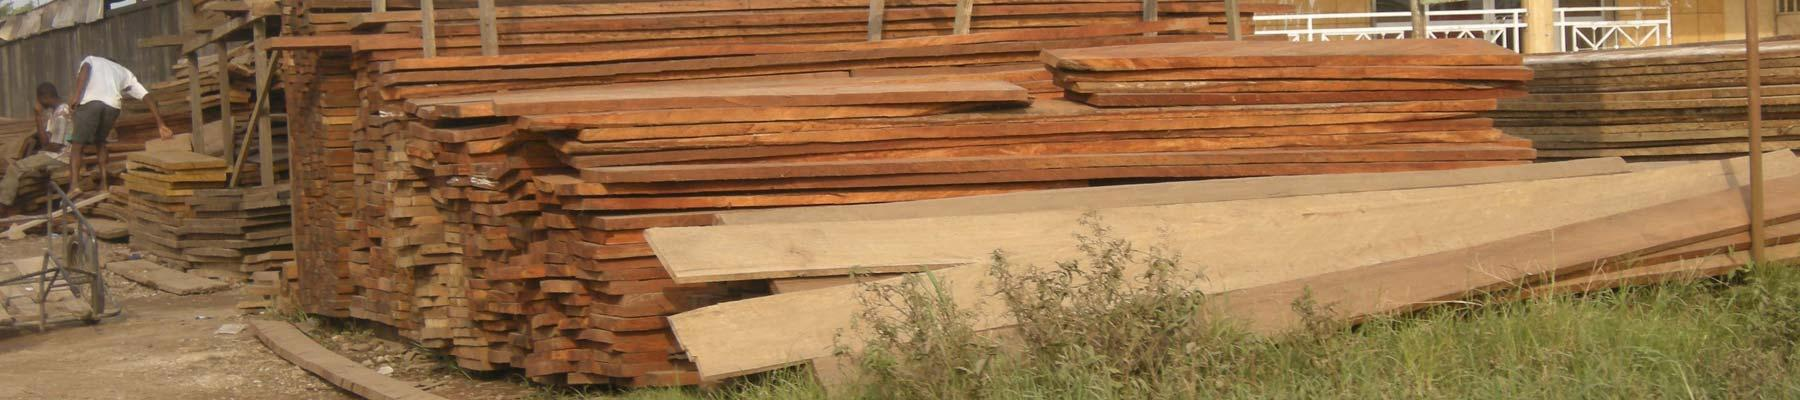 African timber awaiting export to Asia © Roland Melisch / TRAFFIC